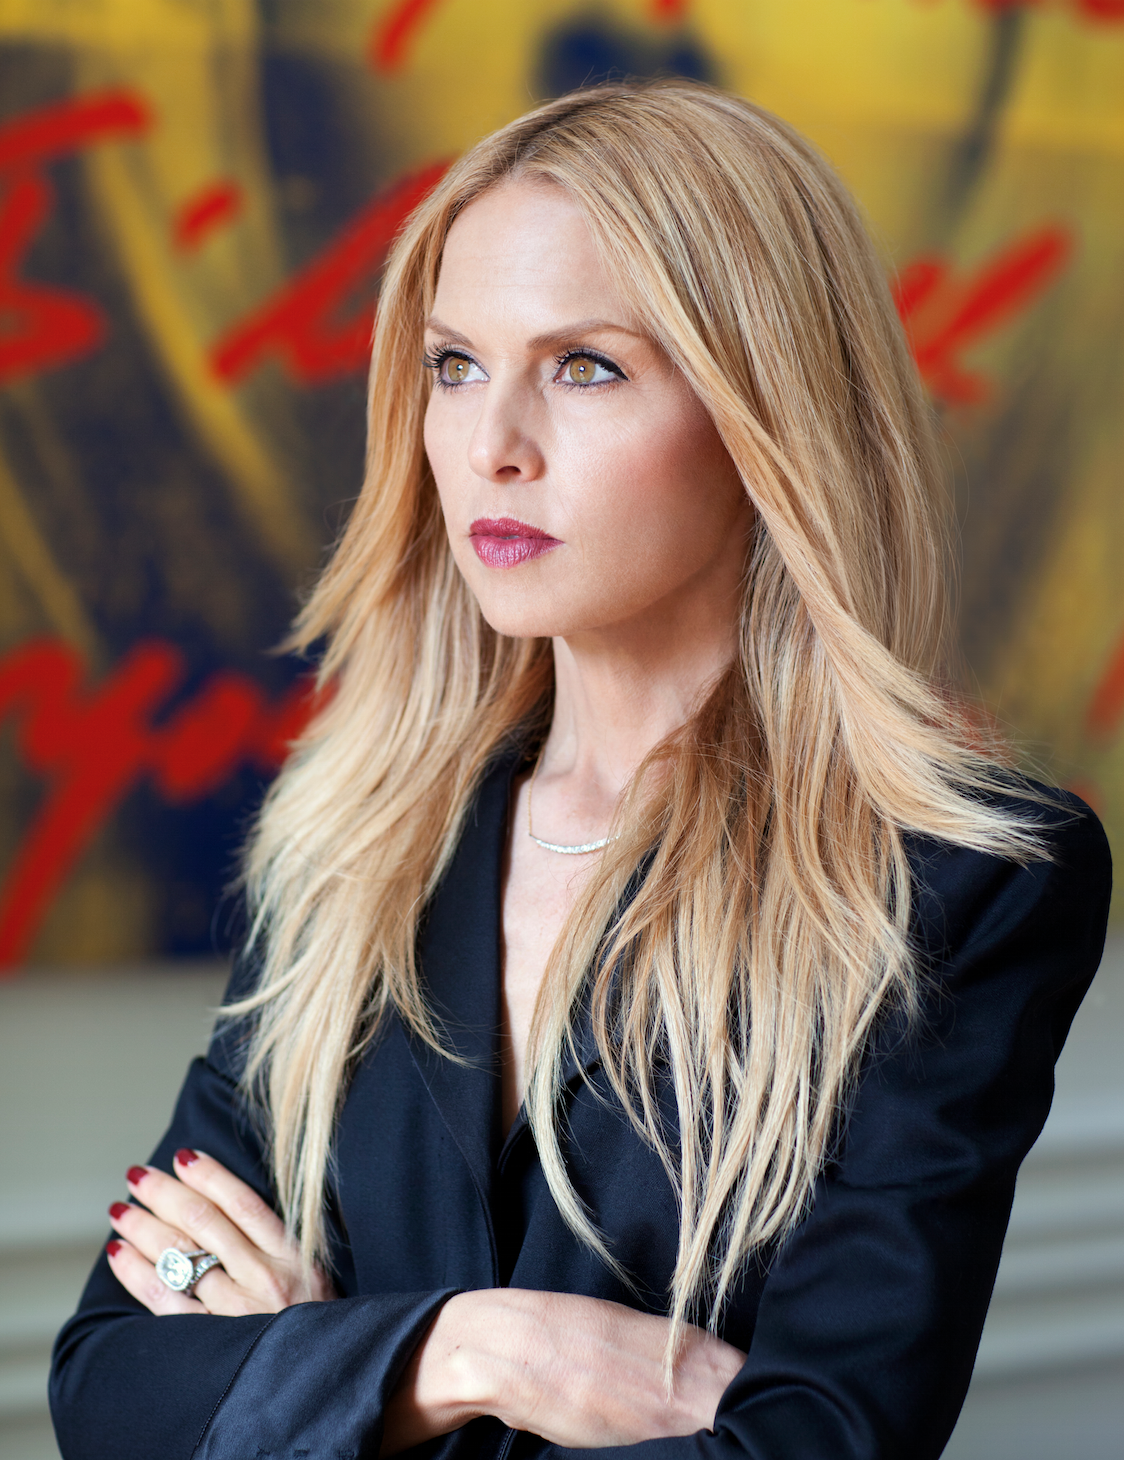 How Rachel Zoe Toughened Up And Made It In Fashion